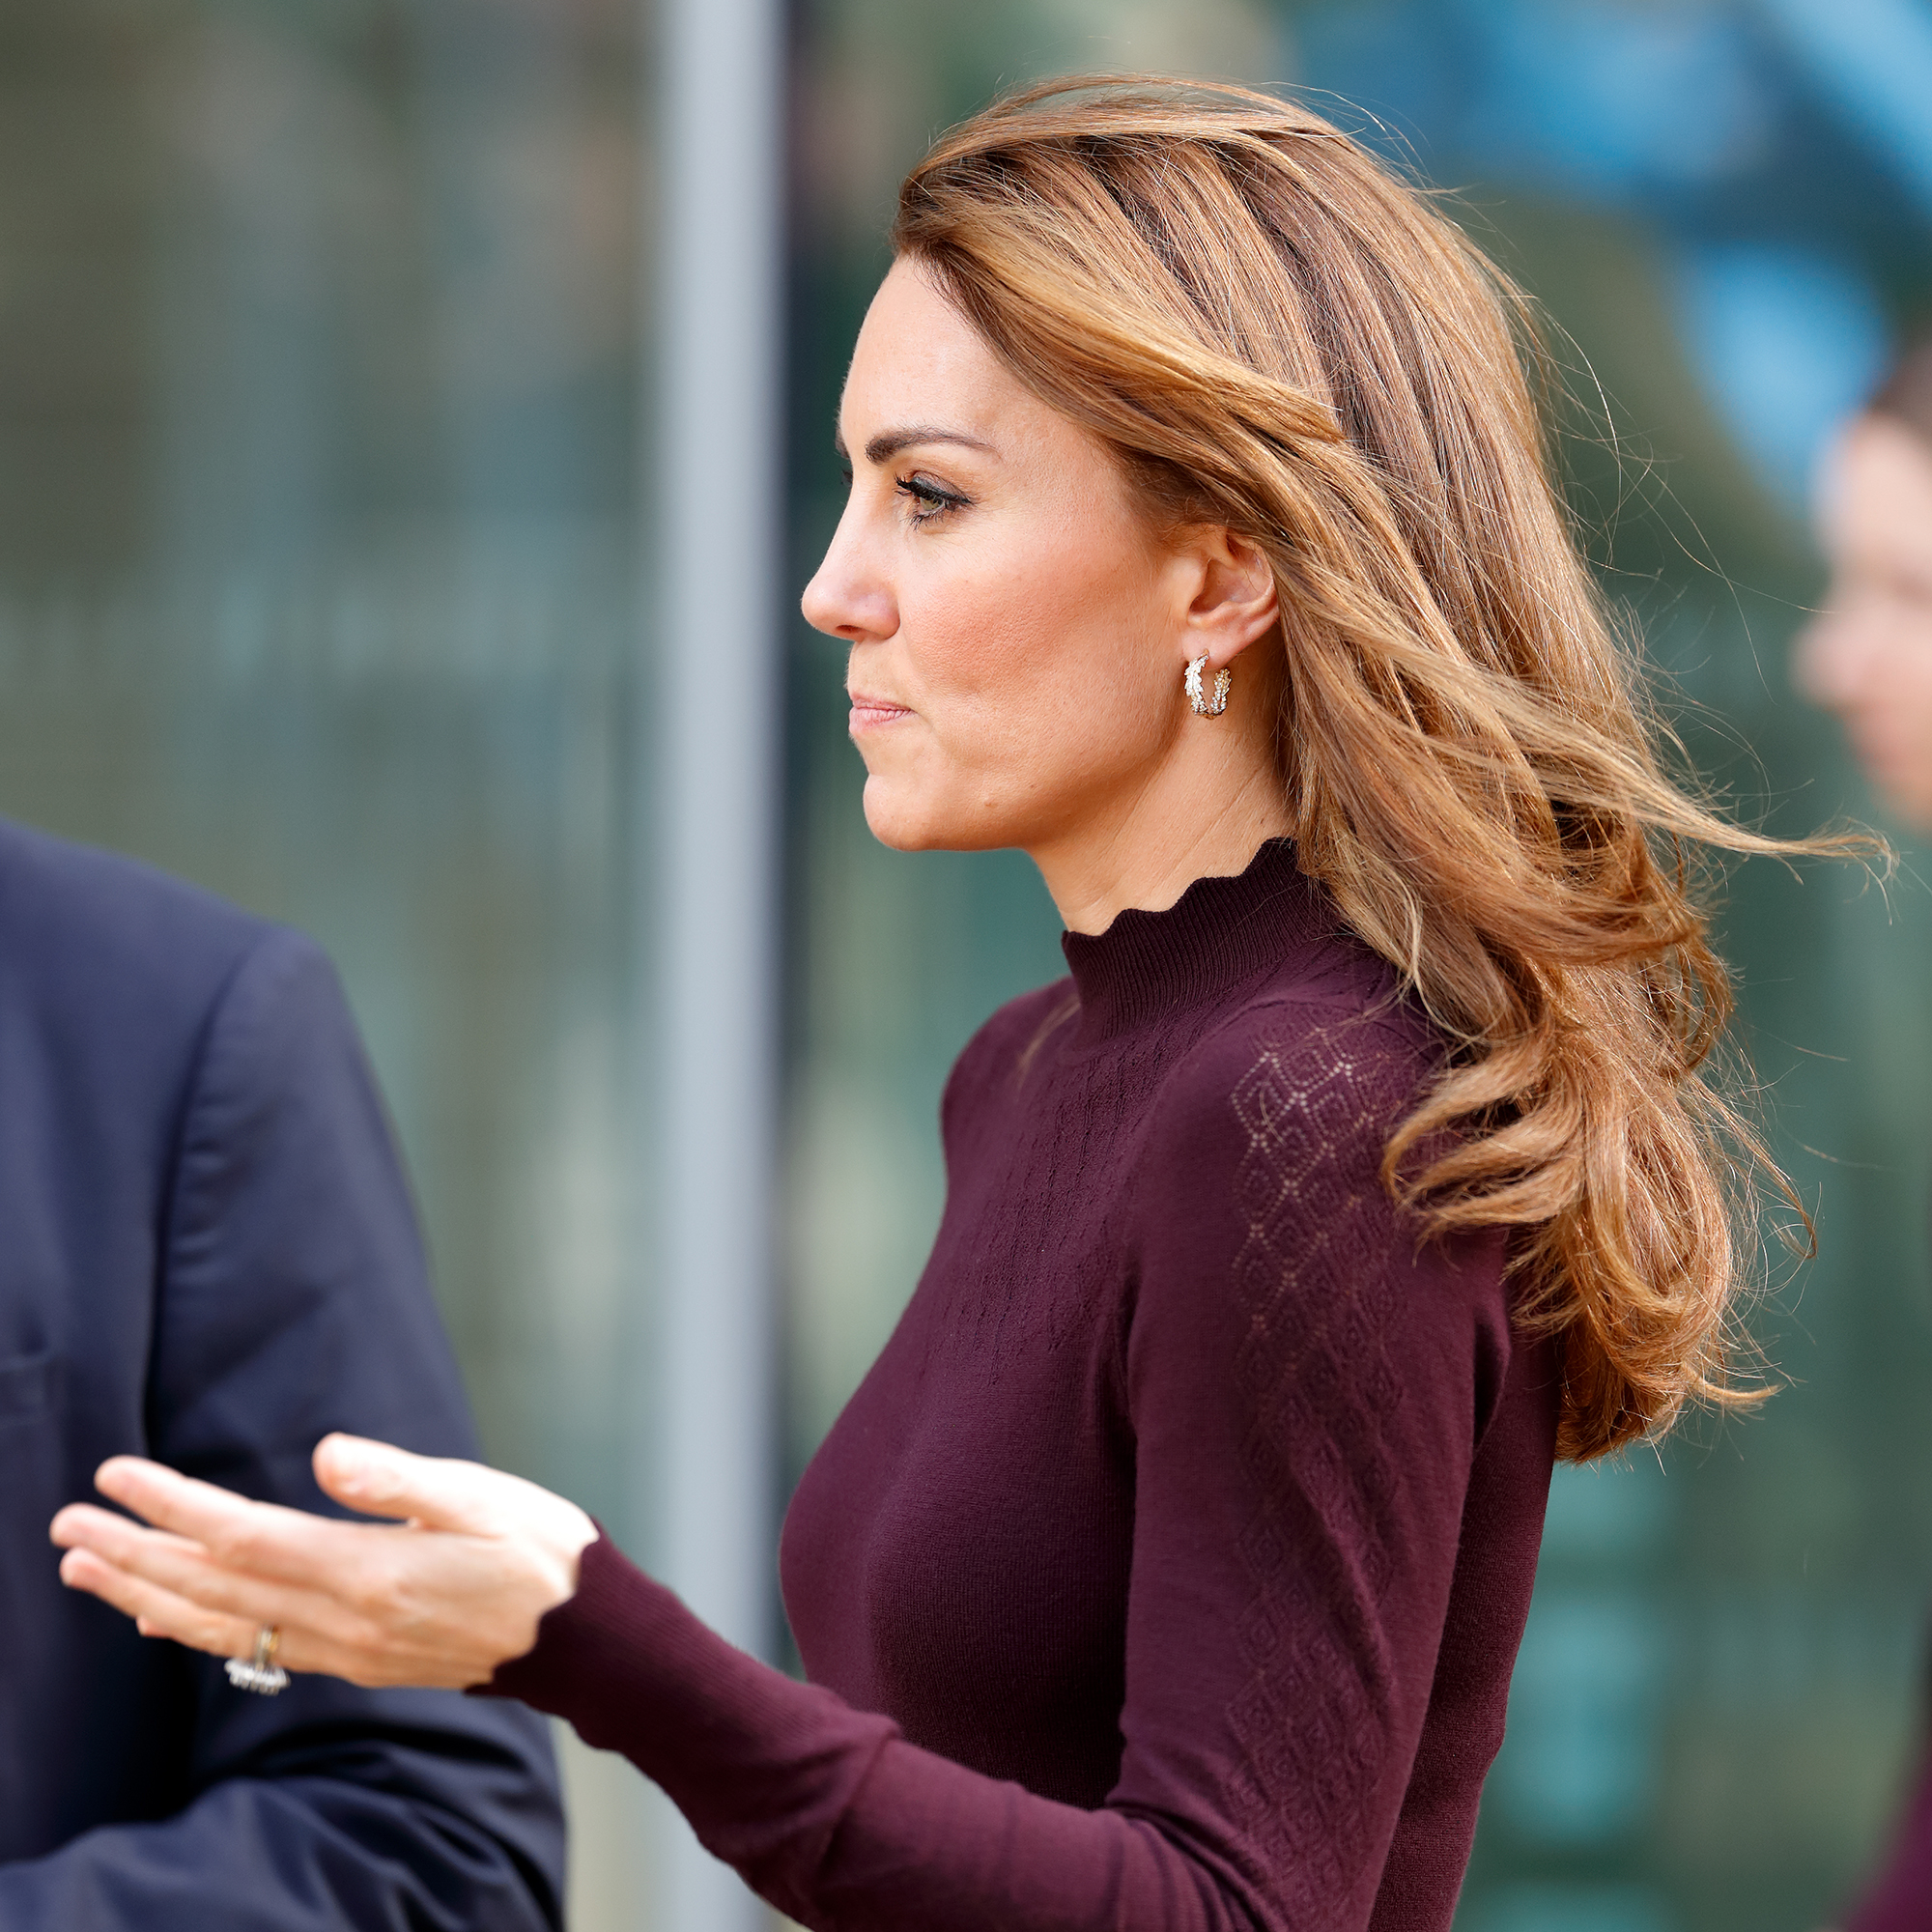 kate middleton has a new haircut see her sleek short look https www today com style kate middleton has new haircut see her sleek short look t175174